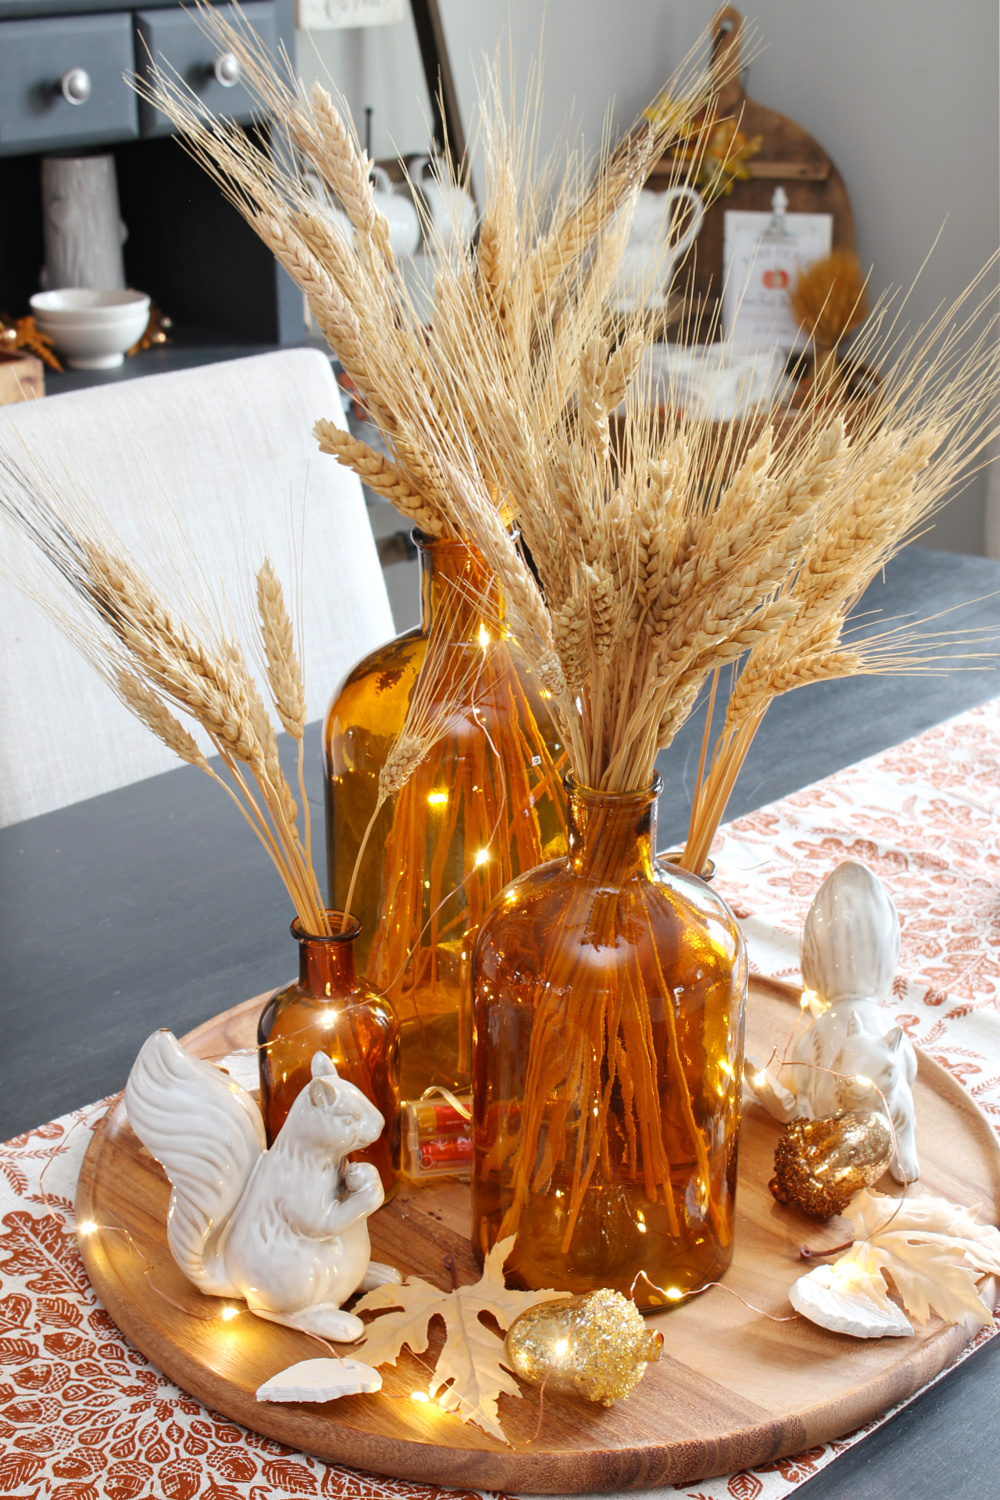 Fall nature-inspired centerpiece with glass amber bottles and twinkle lights.